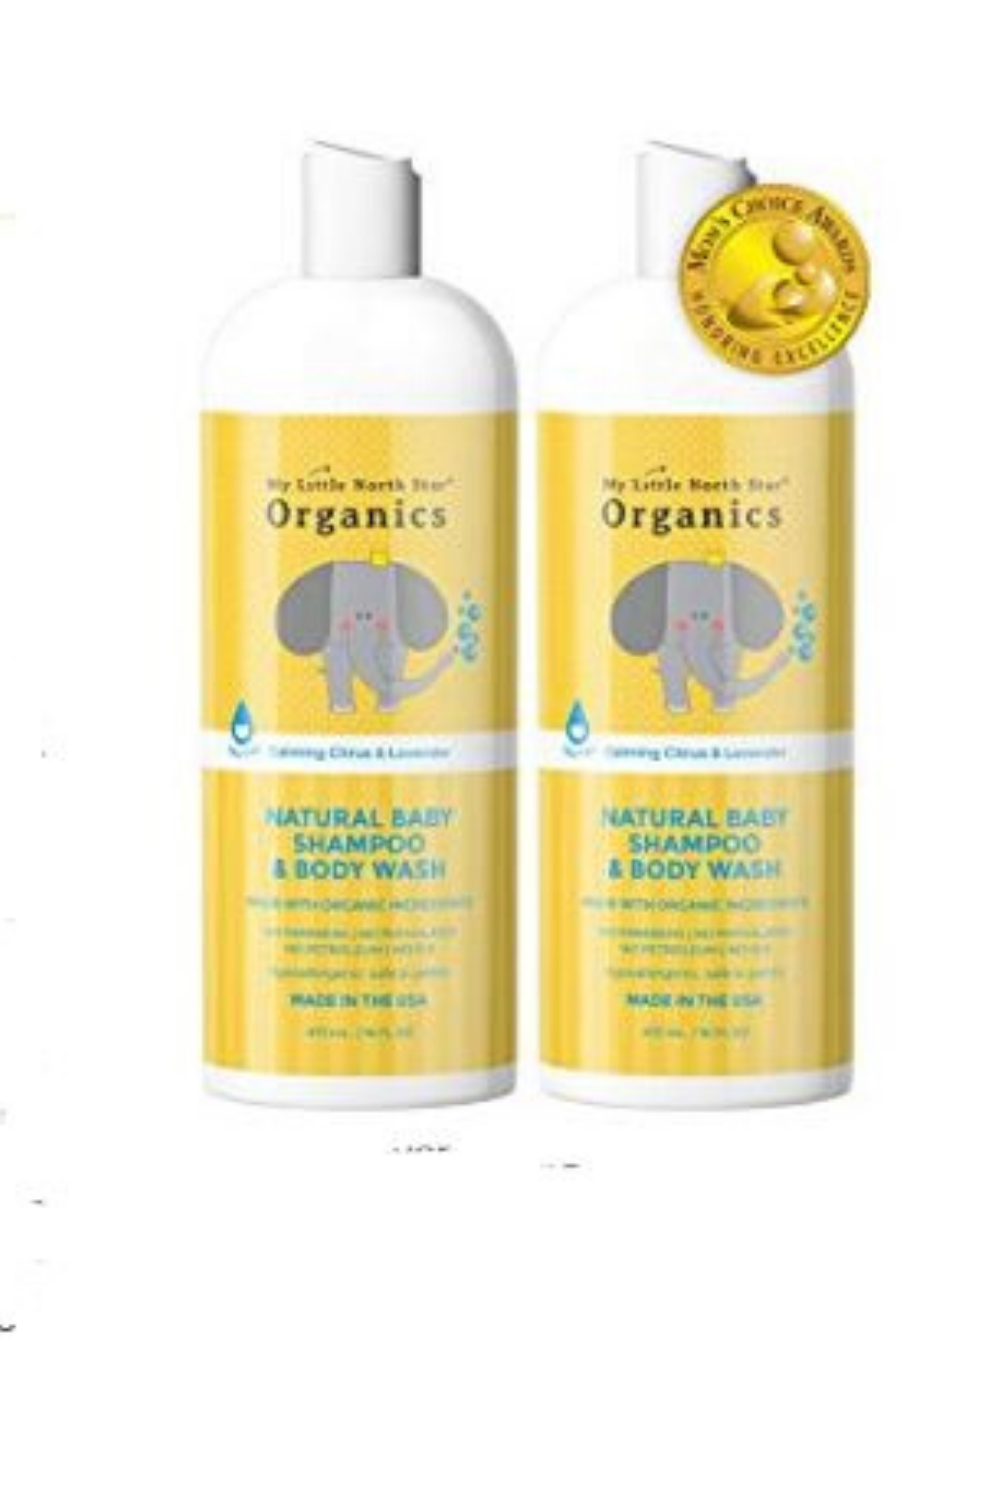 Organic Baby Shampoo Body Wash Tear Free Shampoo For Toddlers Kids Best Organic Baby Pr In 2020 Organic Baby Shampoo Baby Shampoo Natural Organic Baby Products